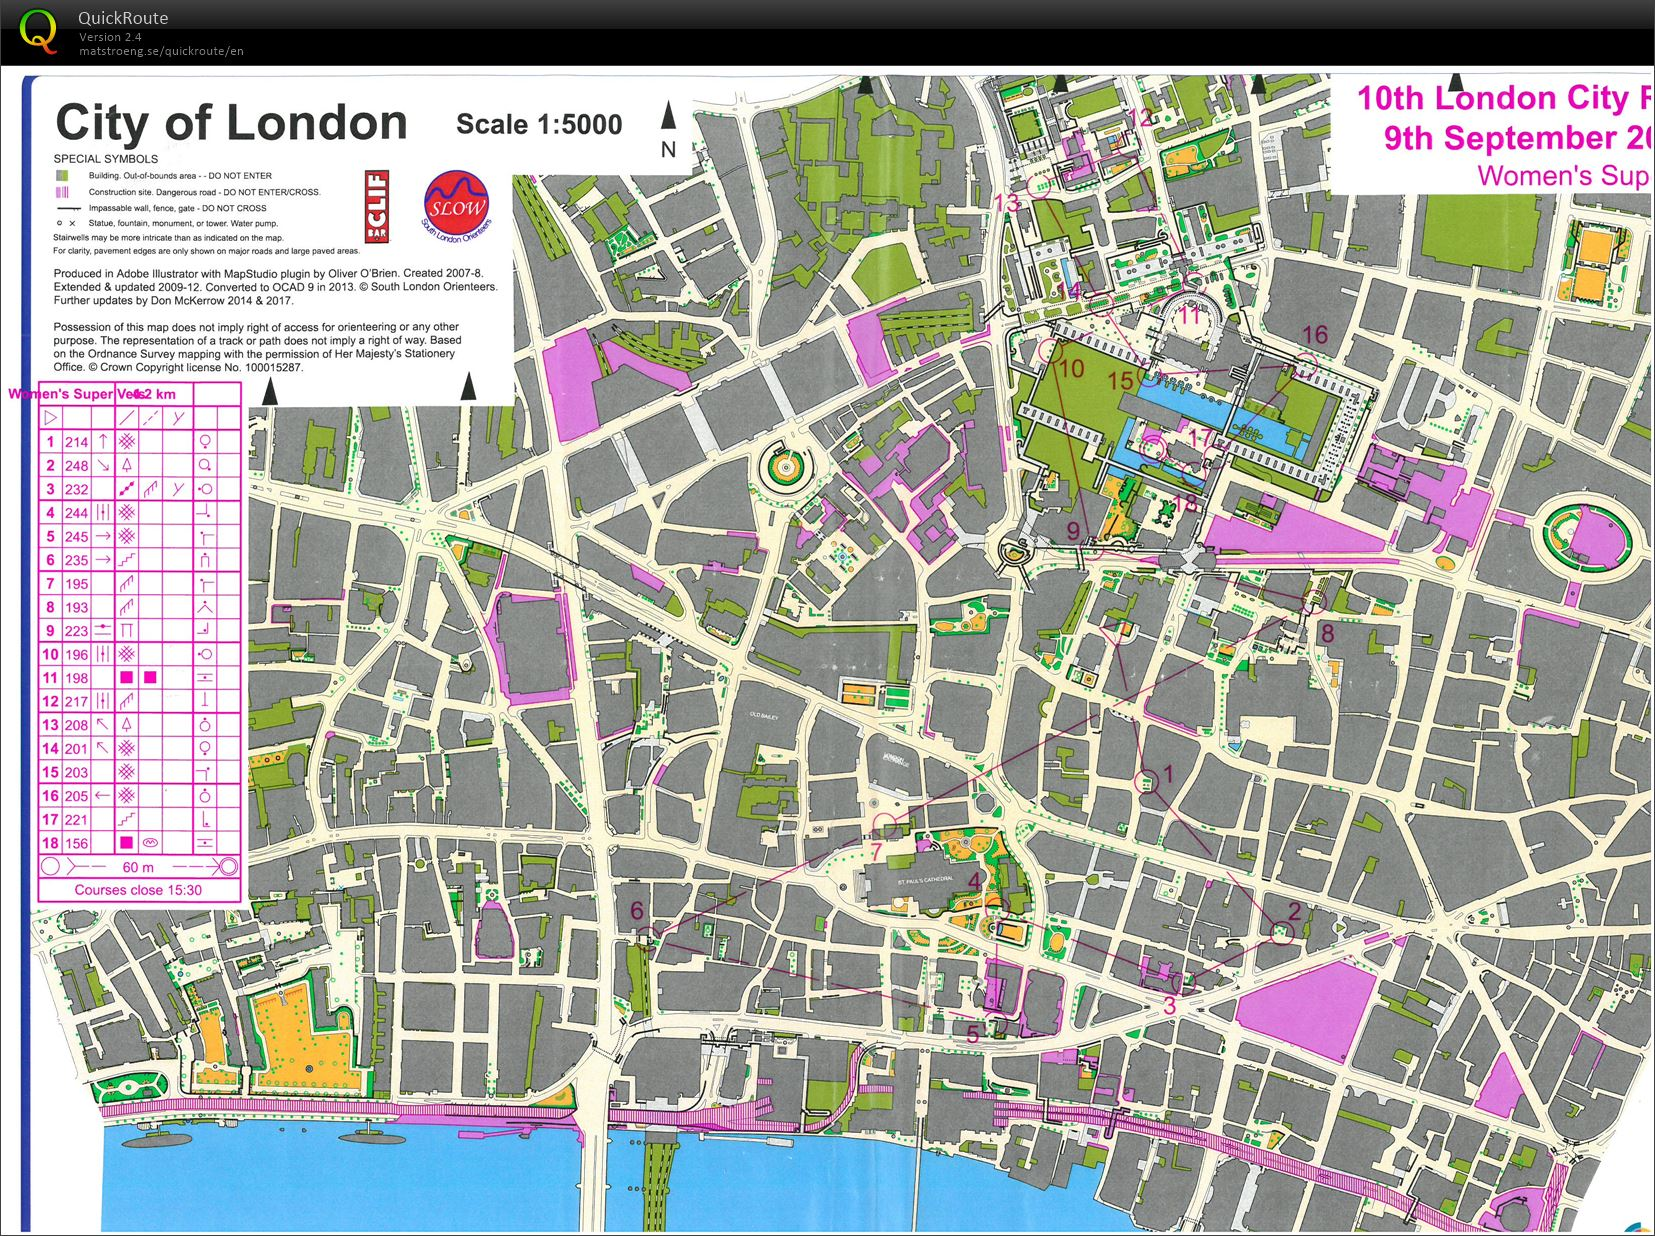 City of London Race Euro City race September 9th 2017